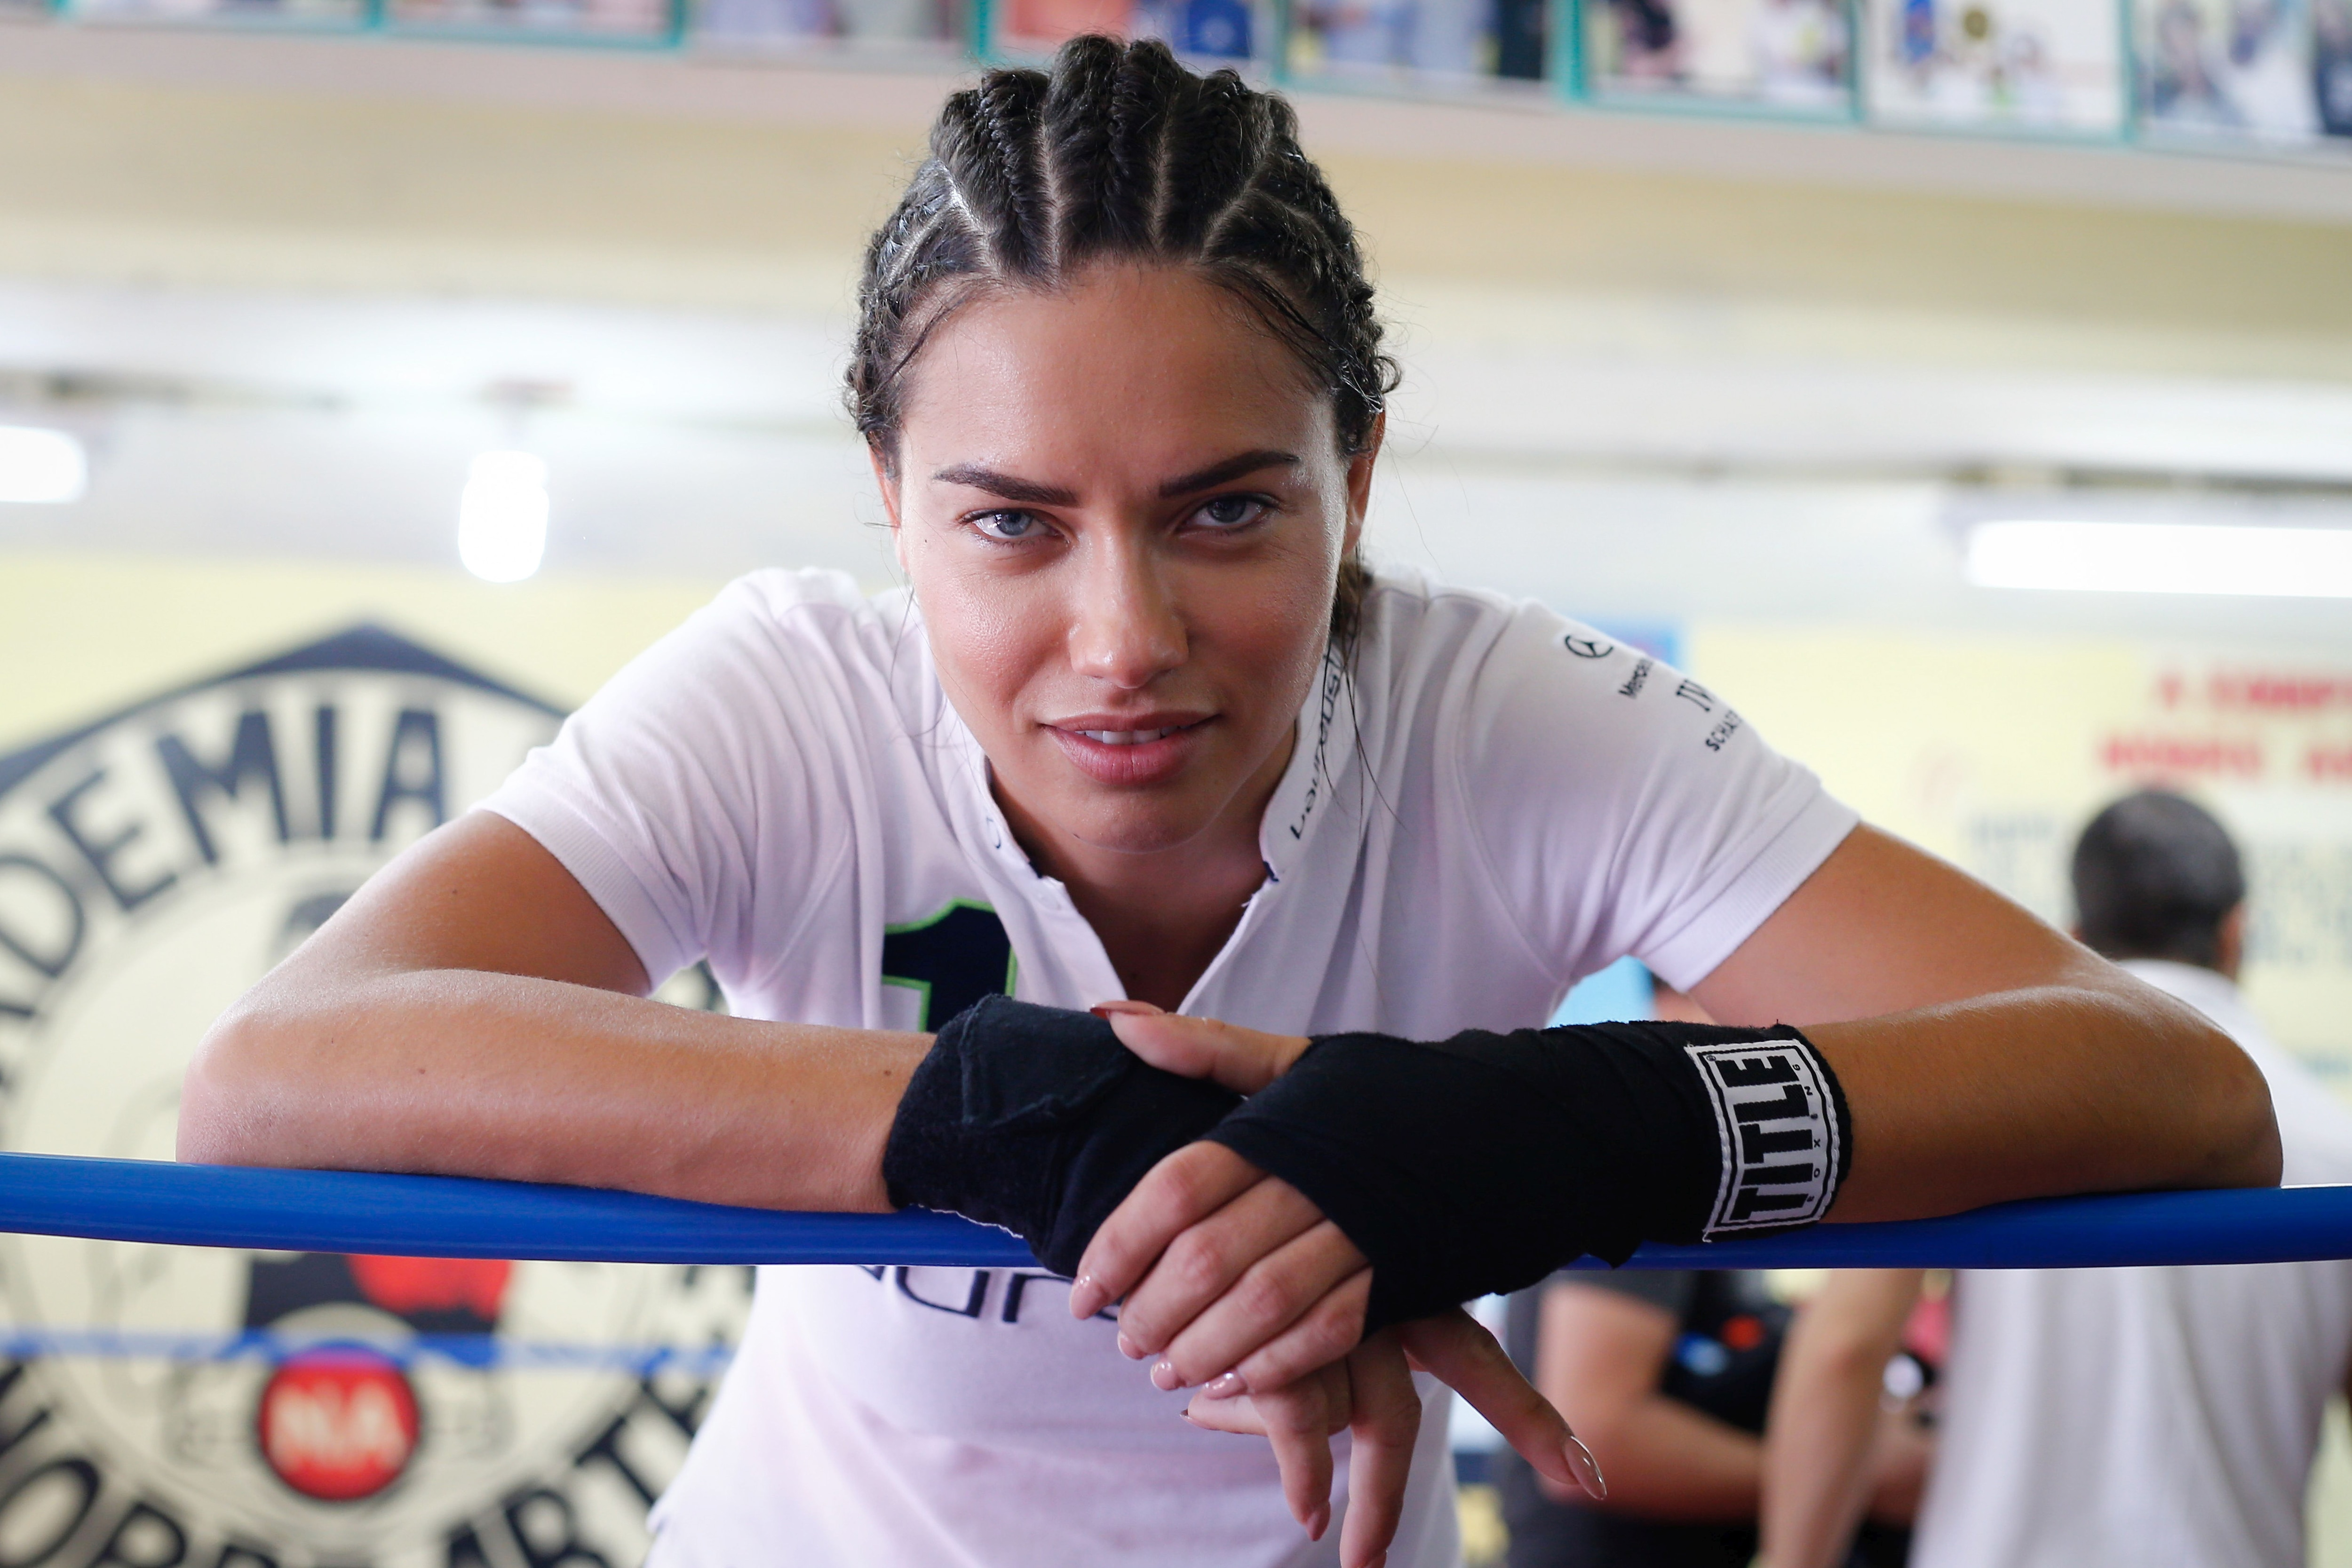 Brazilian supermodel Adriana Lima took part in sessions with children and adolescents in a local boxing gym